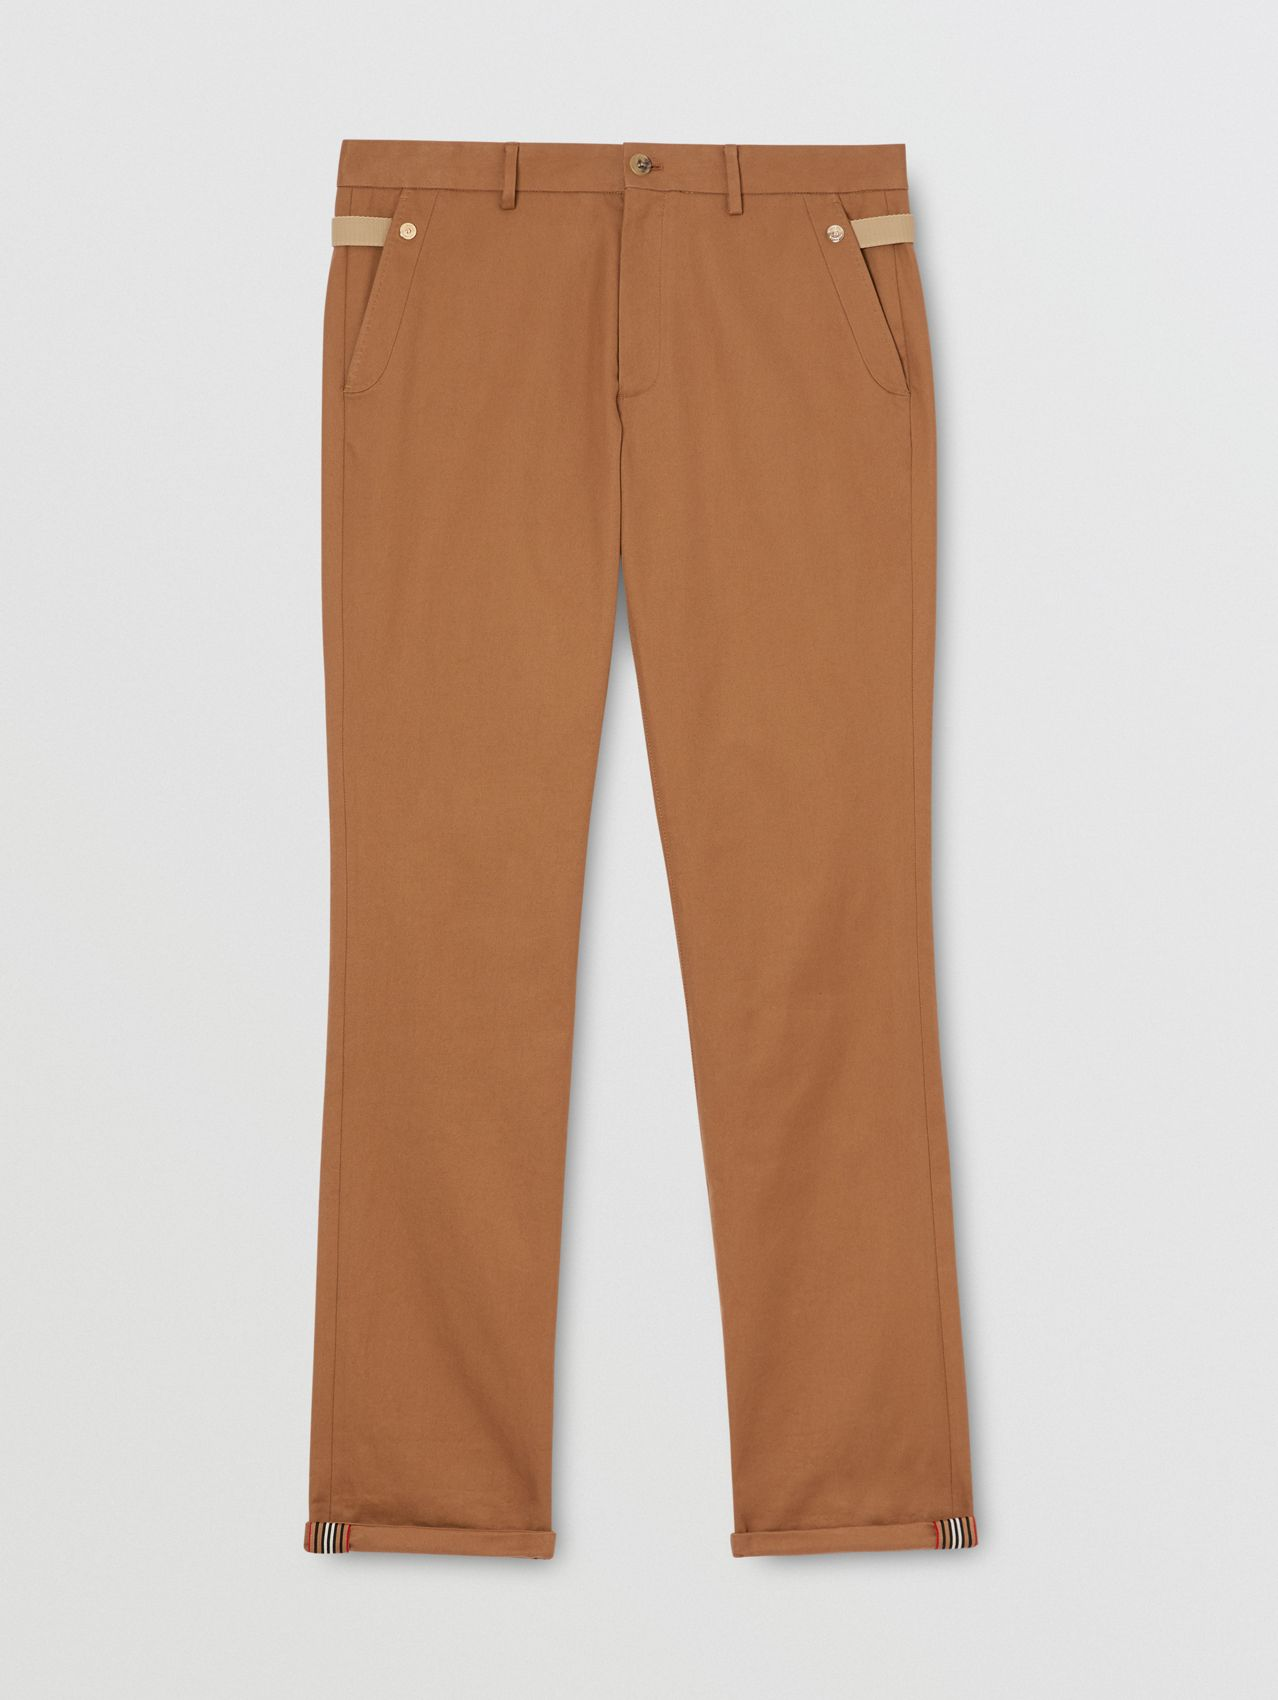 Classic Fit Cotton Chinos in Warm Walnut